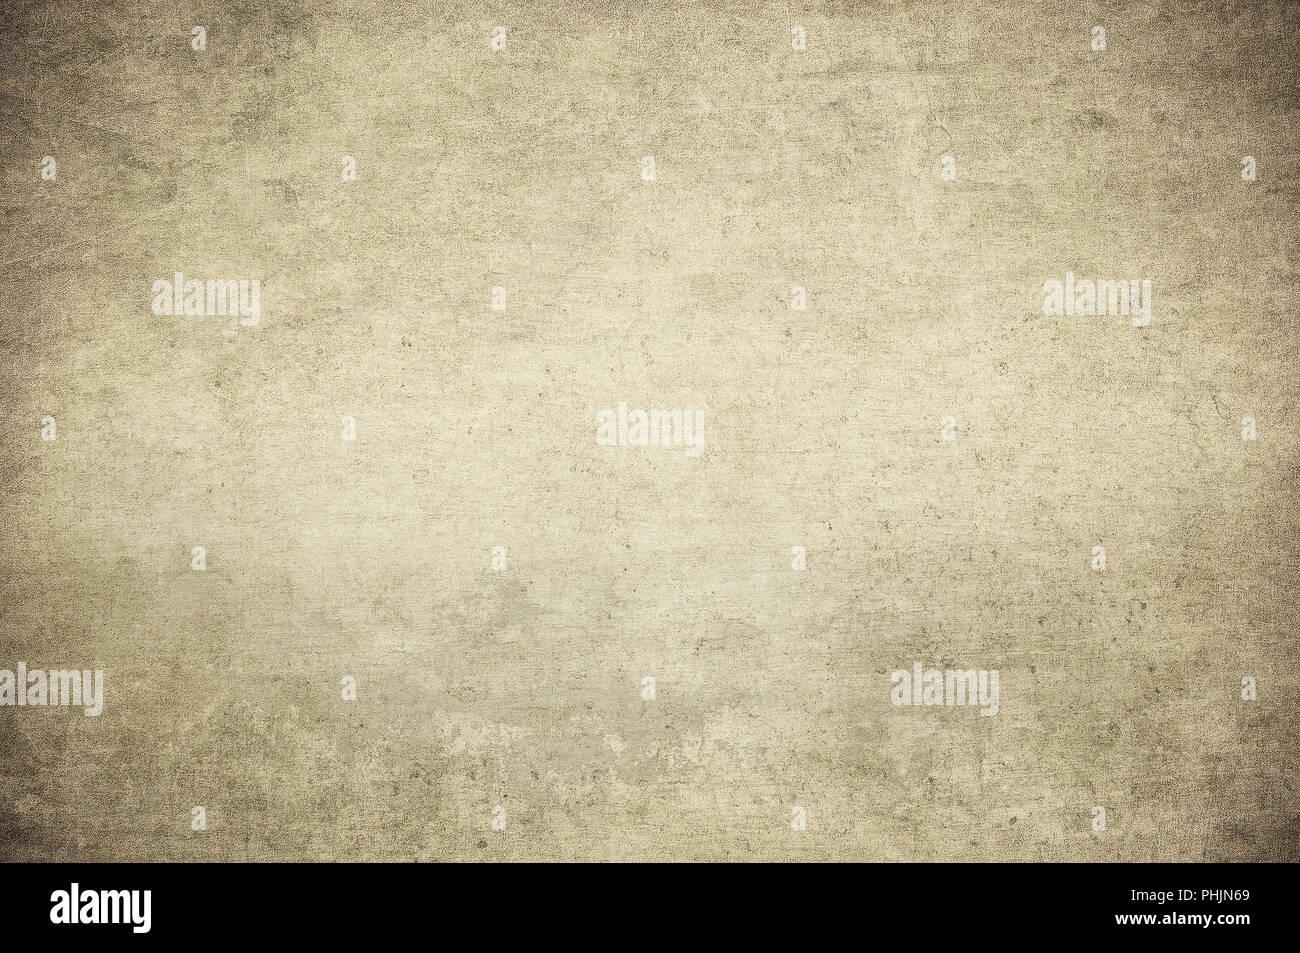 Grunge texture. Nice high resolution background. - Stock Image